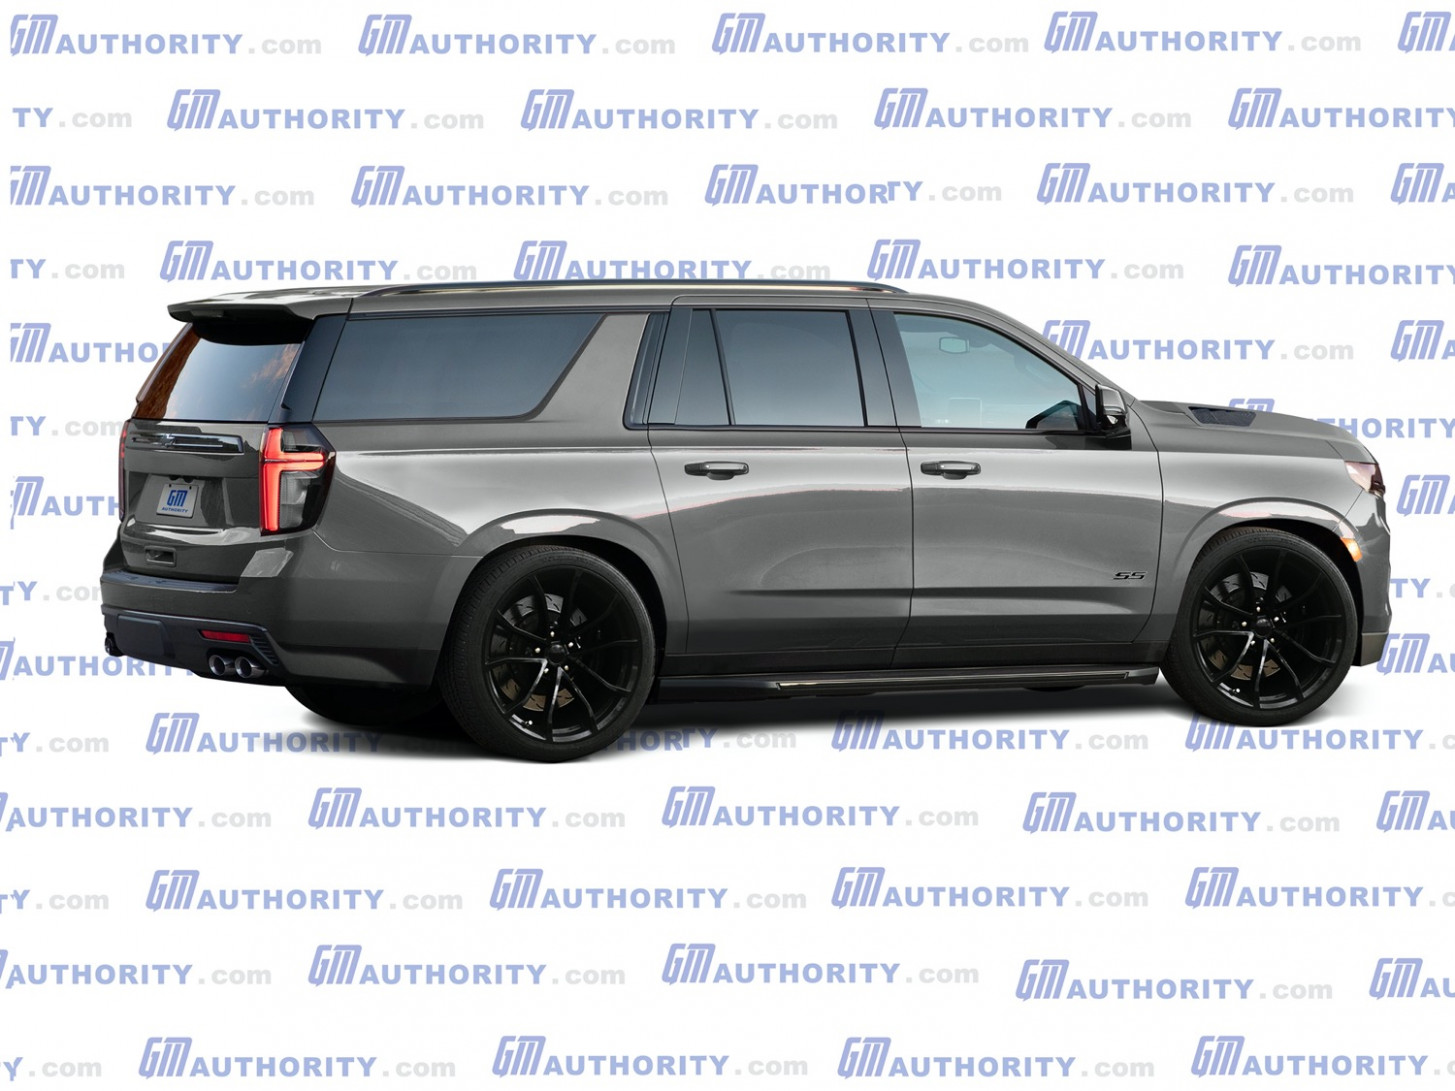 Ratings When Will The 2022 Chevrolet Suburban Be Released